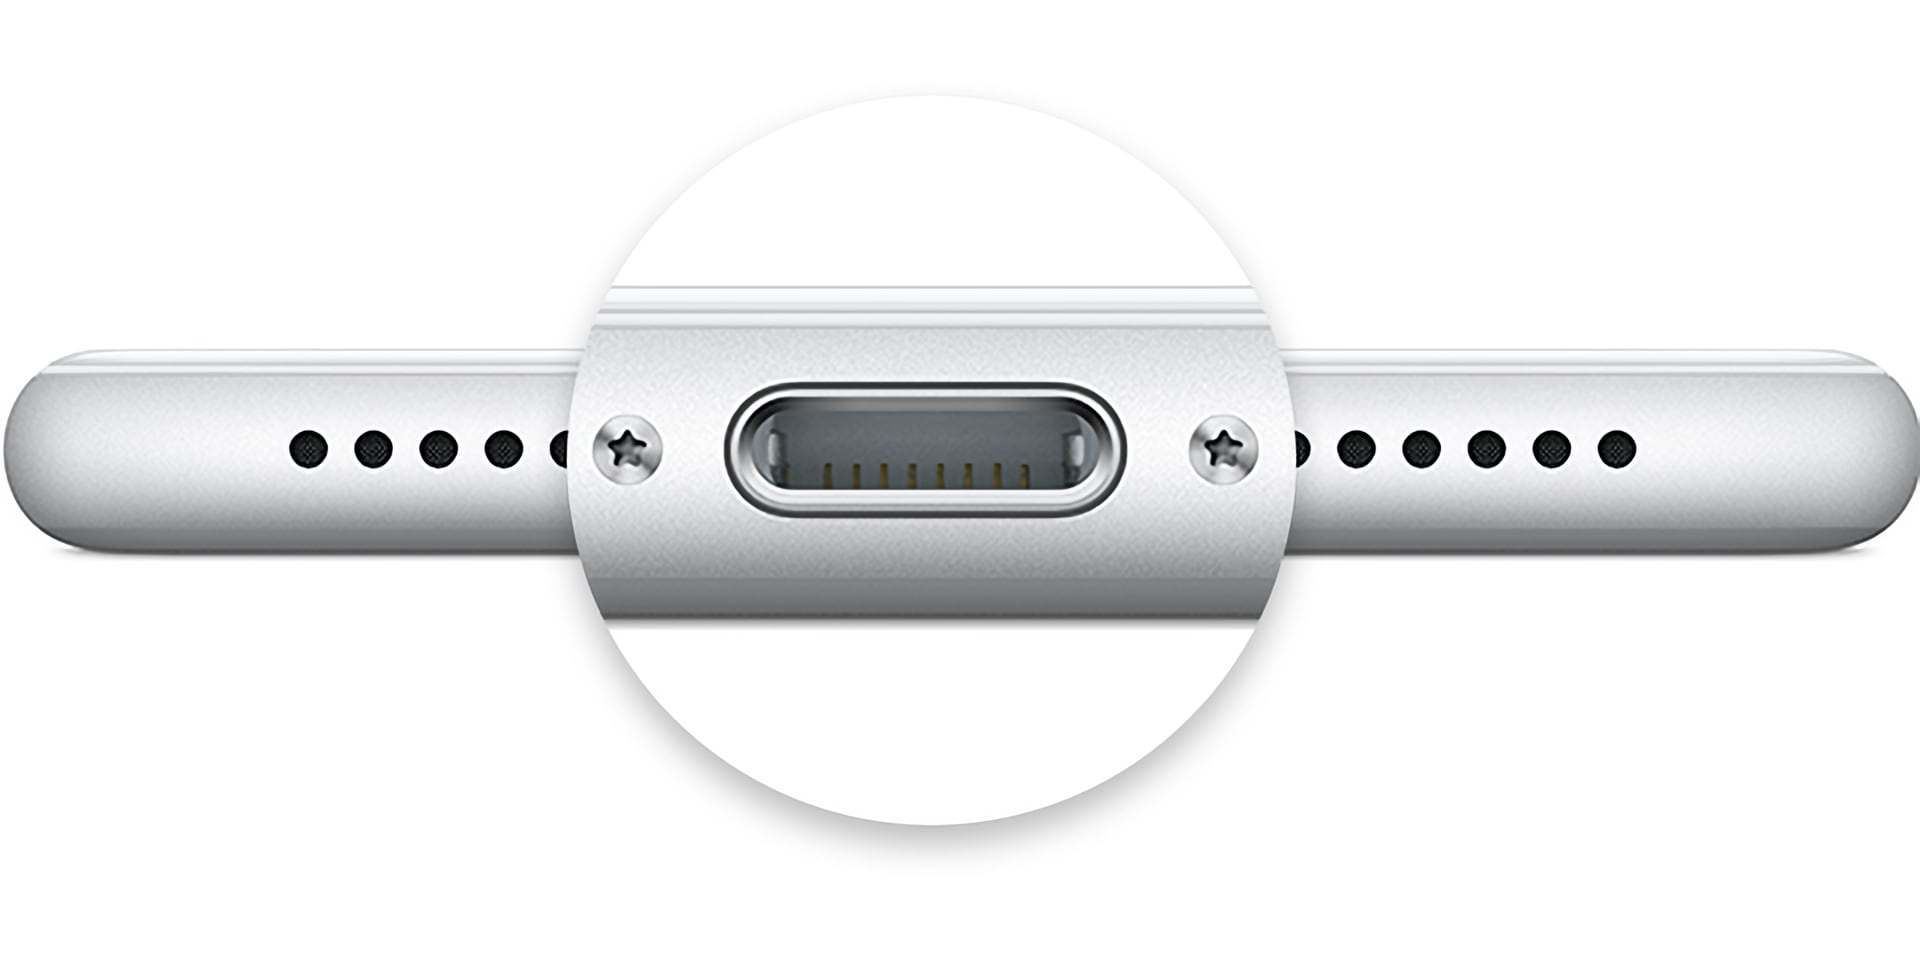 Lightning ports are found on all iPhones since the release of the iPhone 5 in 2012. They're also found on the charging cases for AirPods, some wireless keyboards and mice for Macs, and some Beats headphones and earphones.